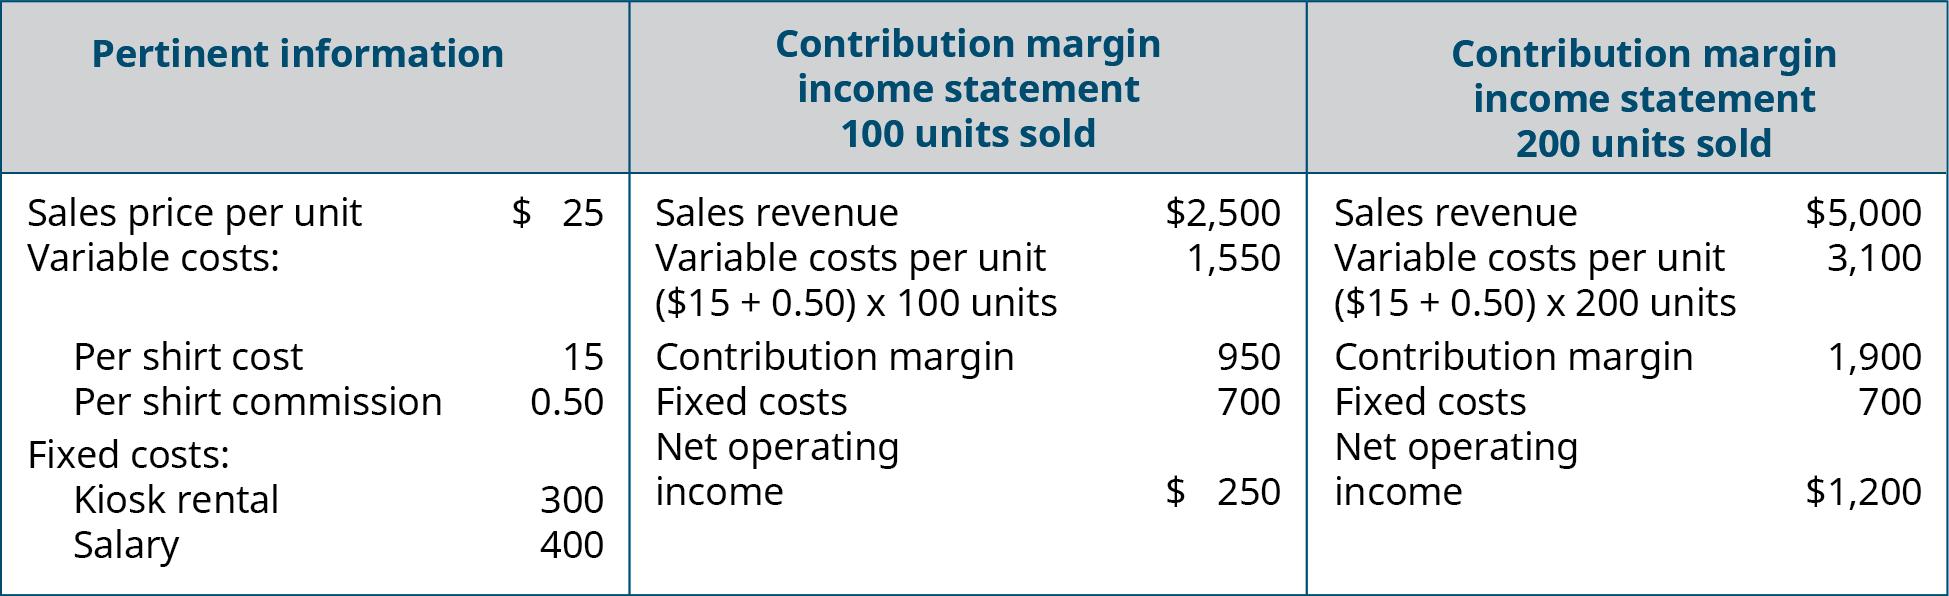 Pertinent Information Per Unit, Contribution Margin Income Statement 100 Units Sold, and Contribution Margin Income Statement 200 Units Sold (respectively): Sales Price (revenue) $25, 2,500, 5,000; Variable Cost 15.50, 1,550, 3,100; Contribution Margin 9.50, 950, 1,900; Fixed Costs: Kiosk Rent 300 and Salary 400, 700, 700; Net Operating Income –, $250, 1,200.